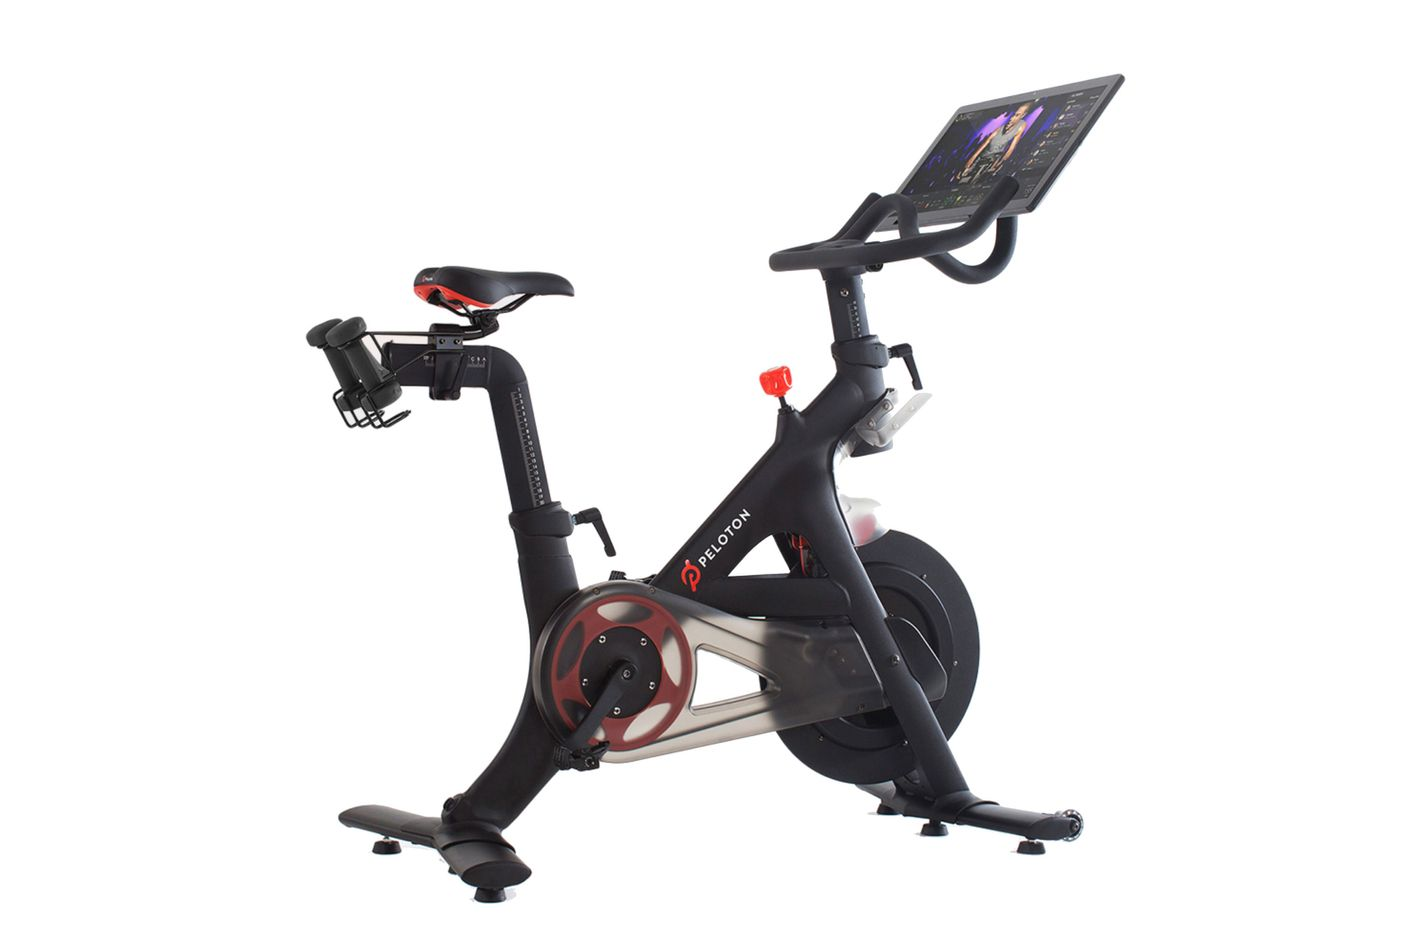 Best Home-Gym Equipment and Reviews 2019 0499fce7c